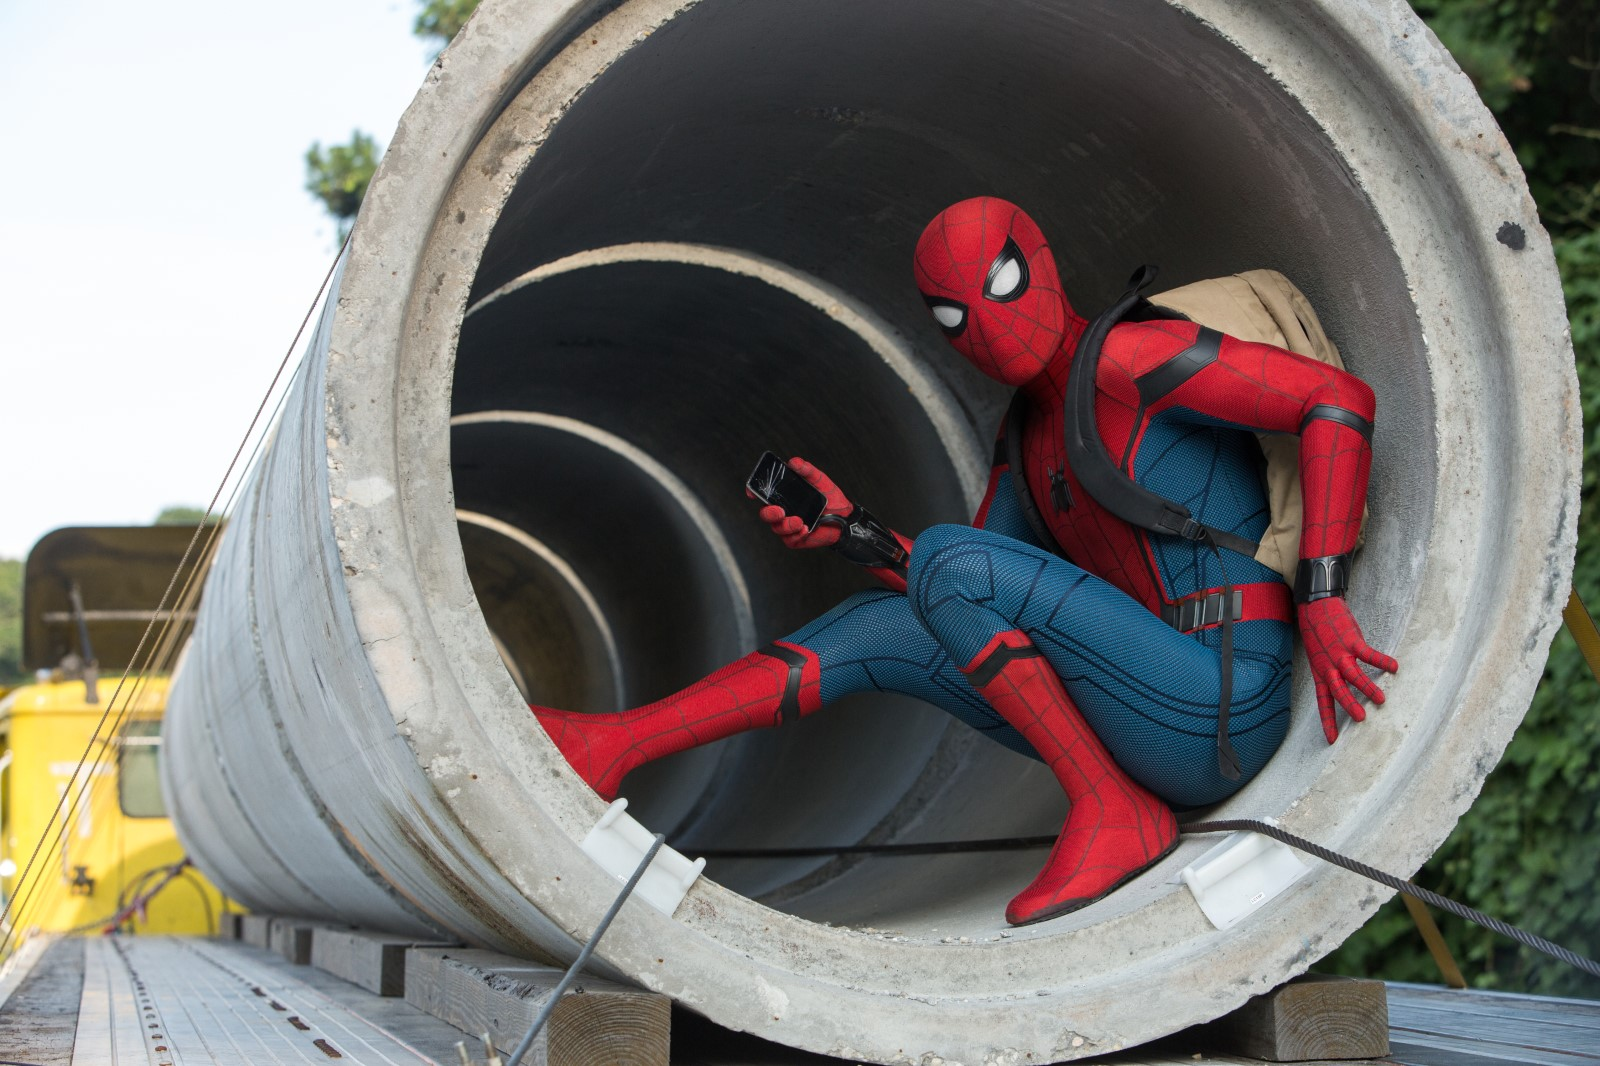 spider-man-homecoming-vedette-cliff-and-co